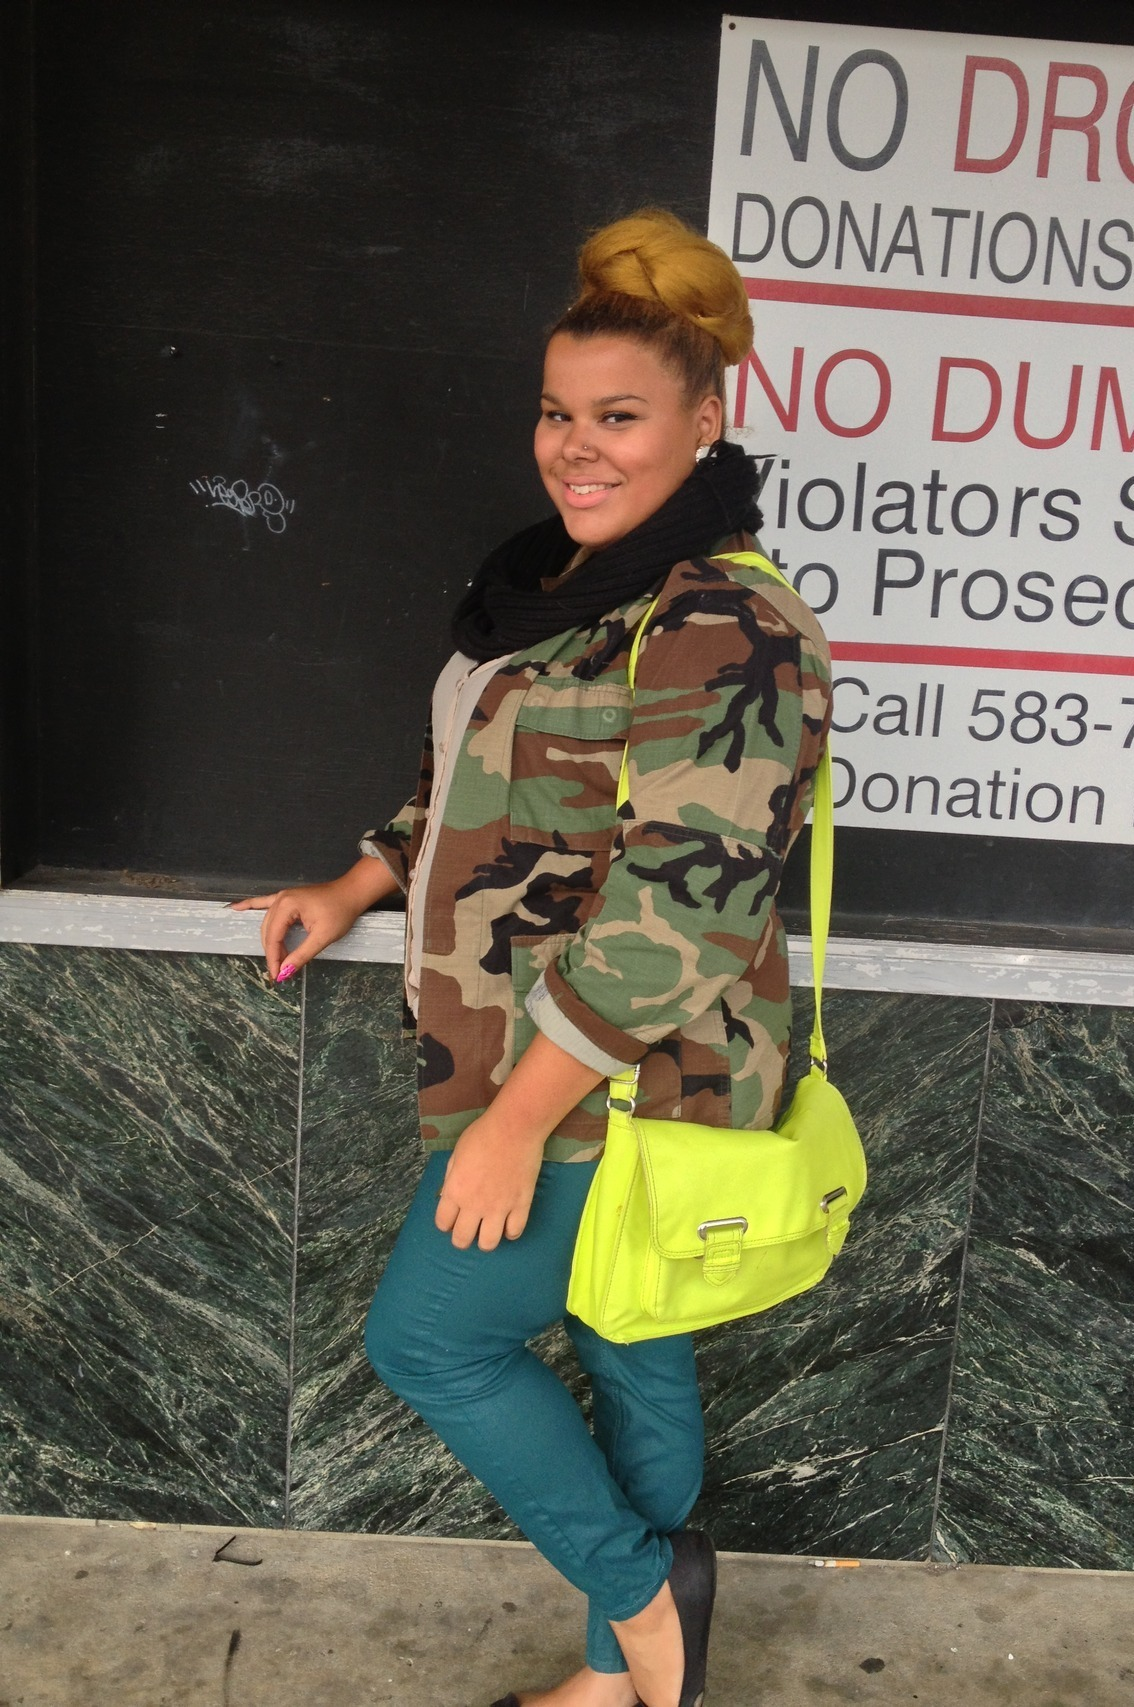 blackfashion:  Camo Jacket: Thrift,Infinity scarf:DIY, Teal Denim:Forever21,Bag: Target,Shoes:Off Broadway Tatianna,17,VA styleremainingfashionfading.com mynameistbarry.tumblr.com